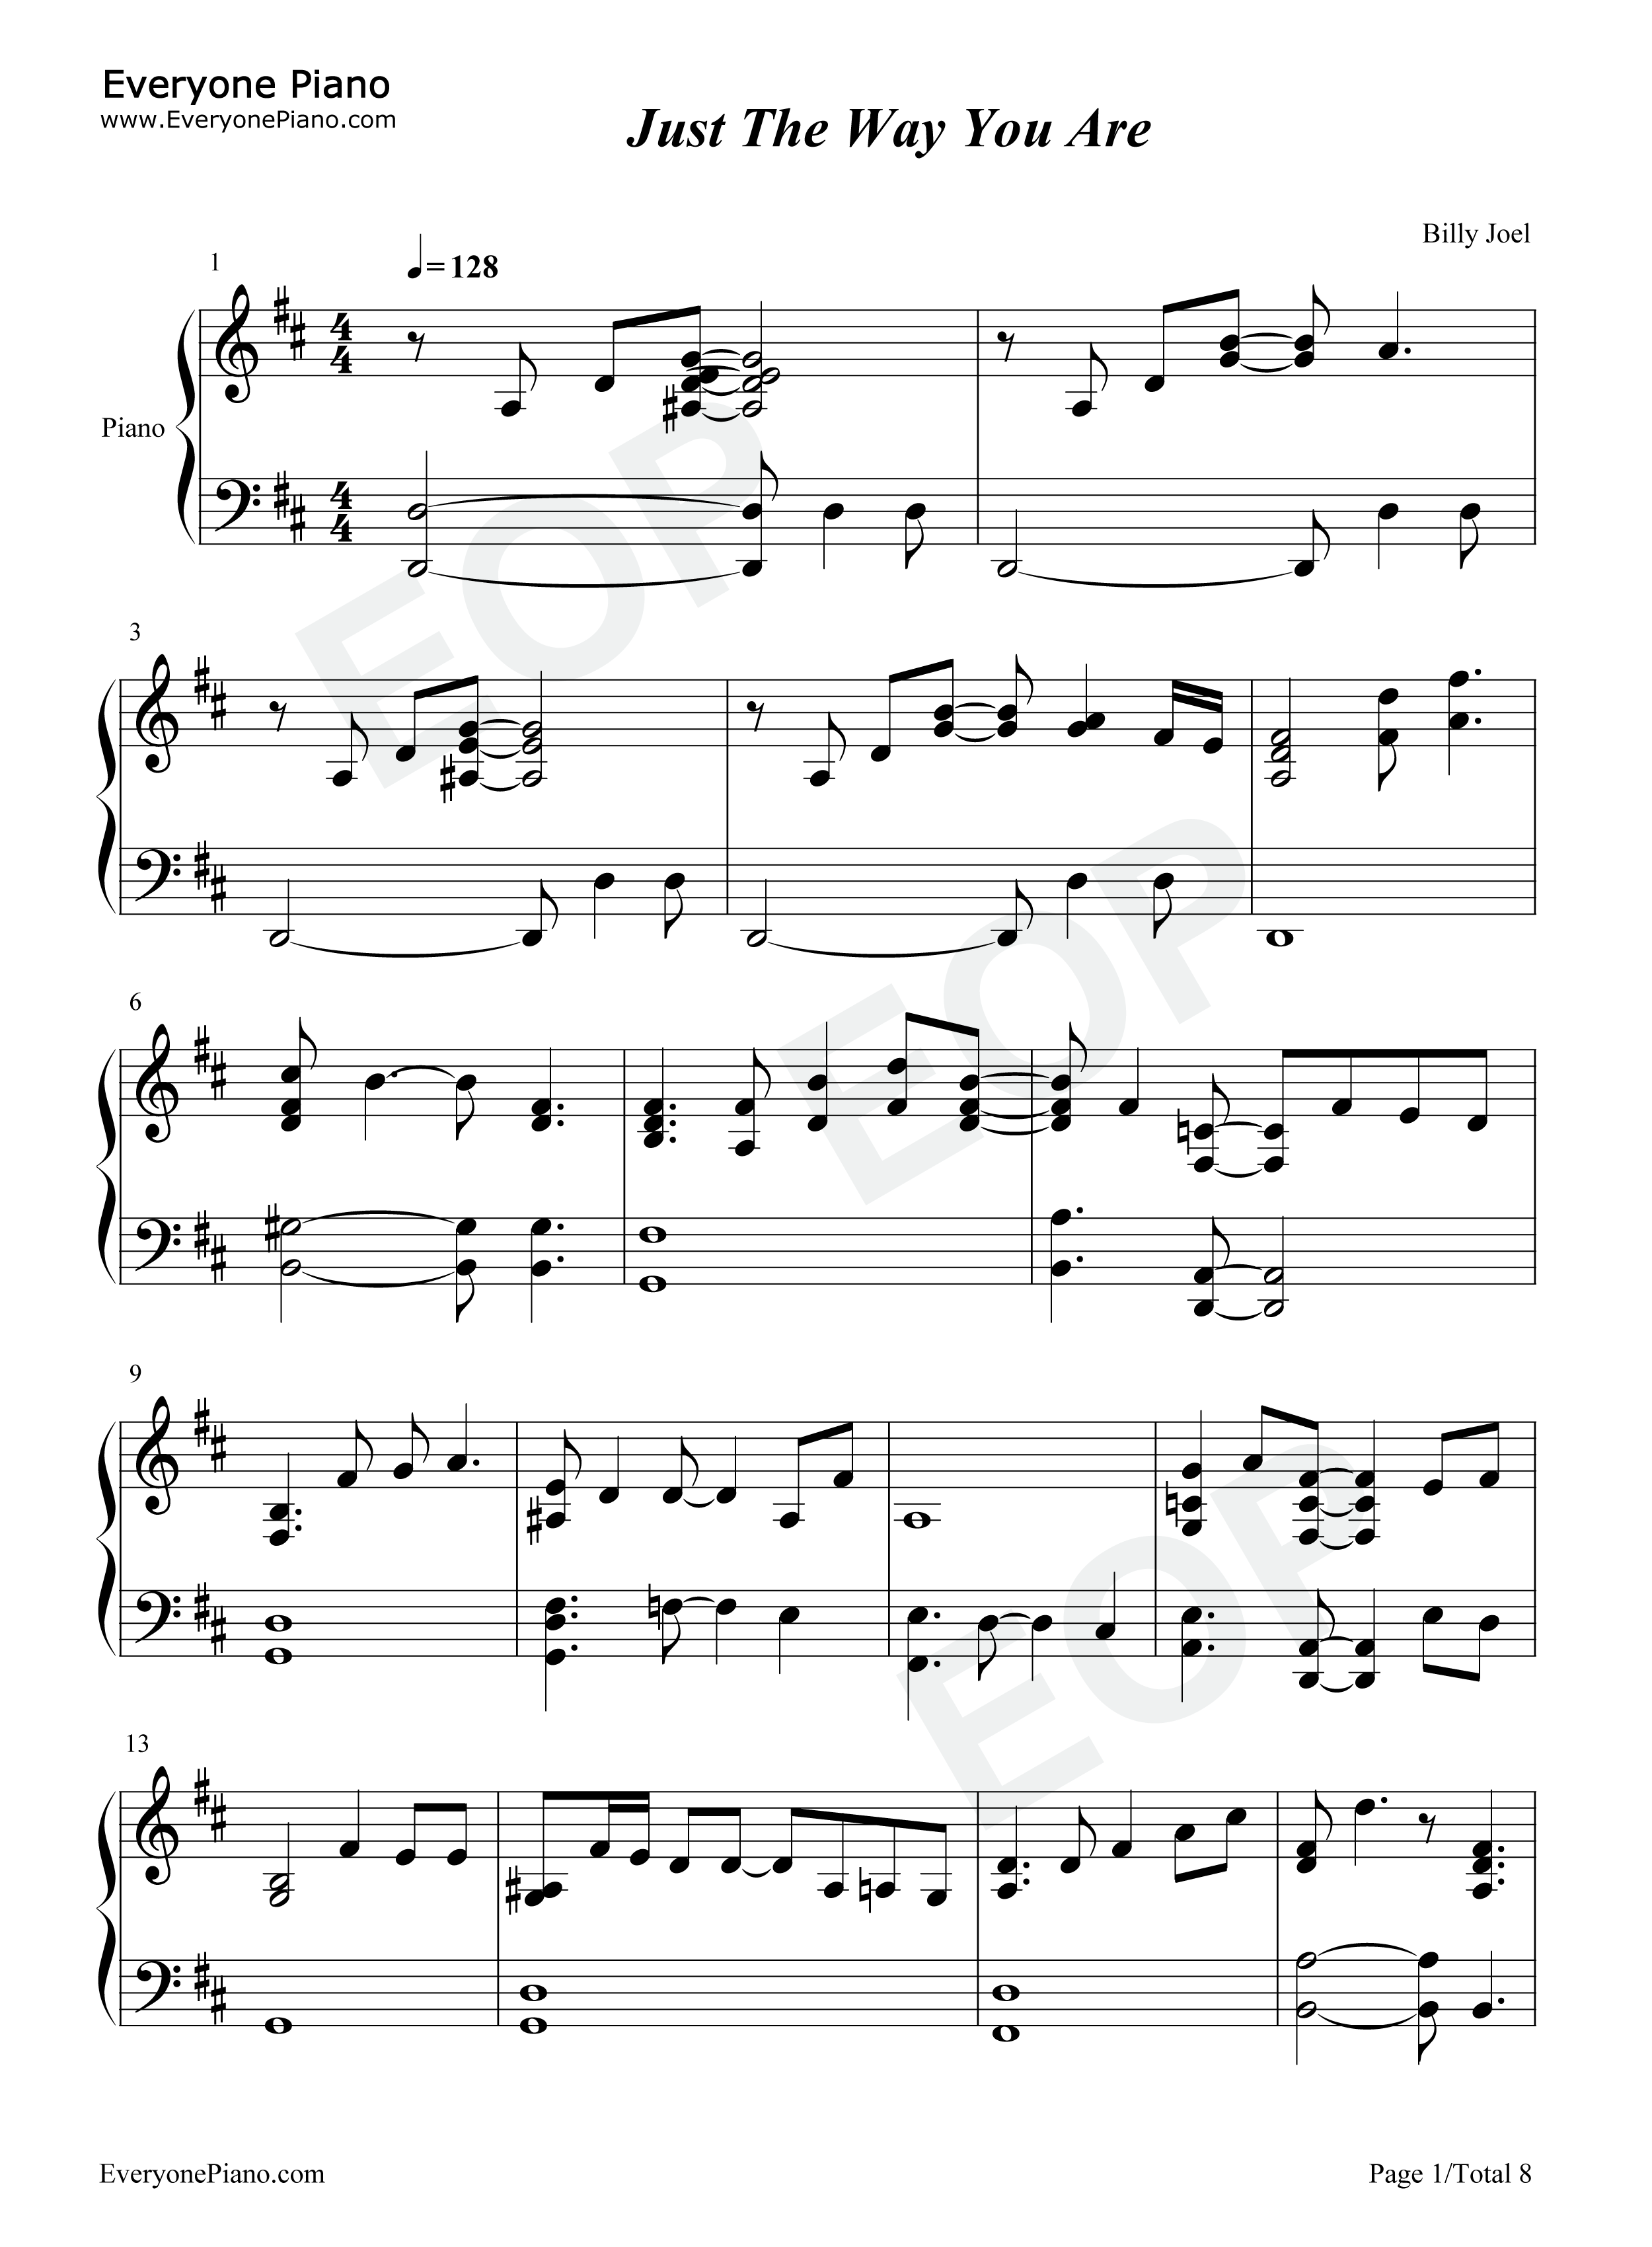 Just the way you are billy joel stave preview 1 free piano sheet listen now print sheet just the way you are billy joel stave preview 1 hexwebz Gallery